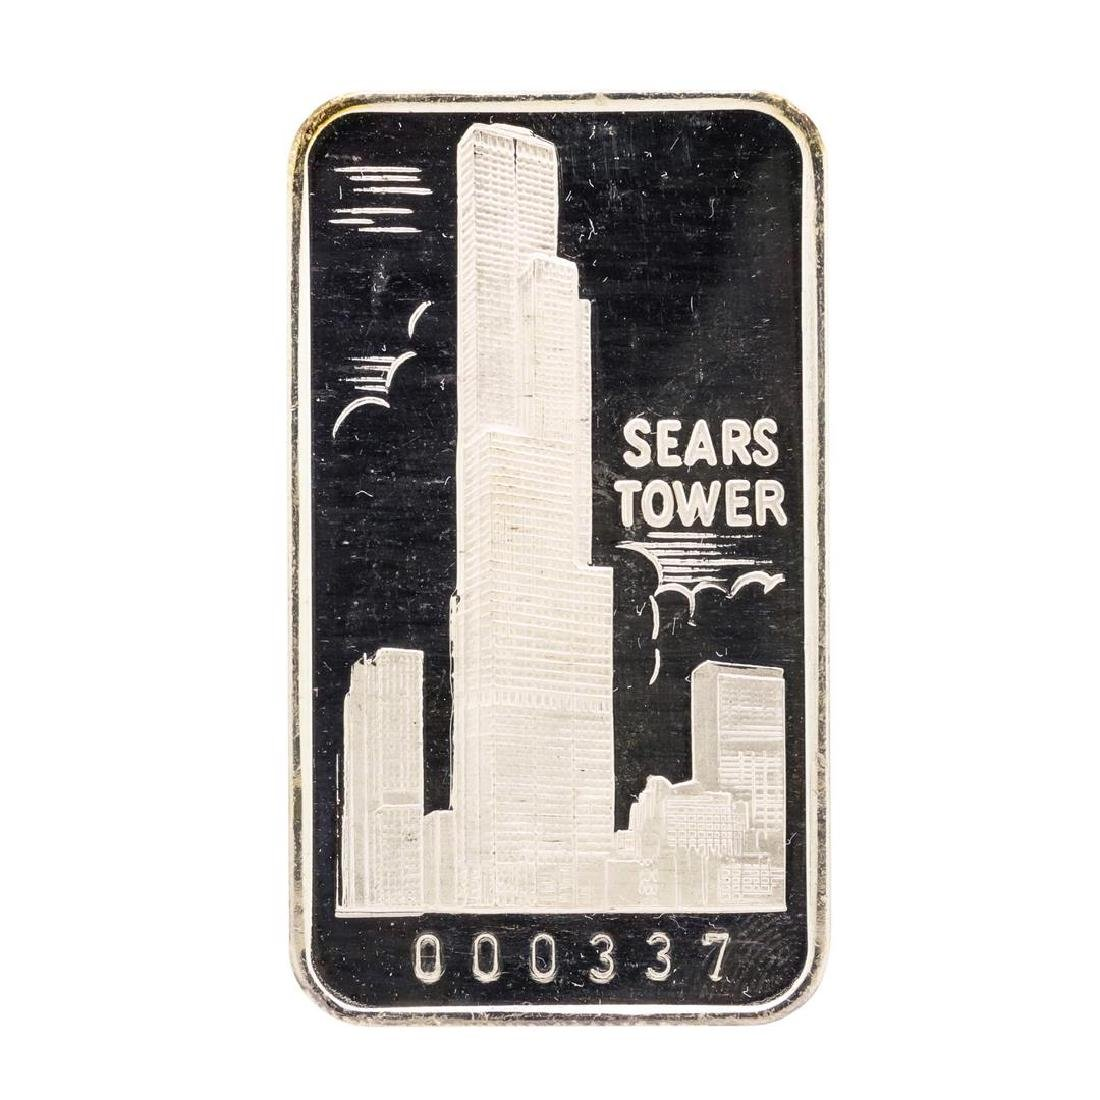 The First National Bank of Chicago Sears Tower 1 oz